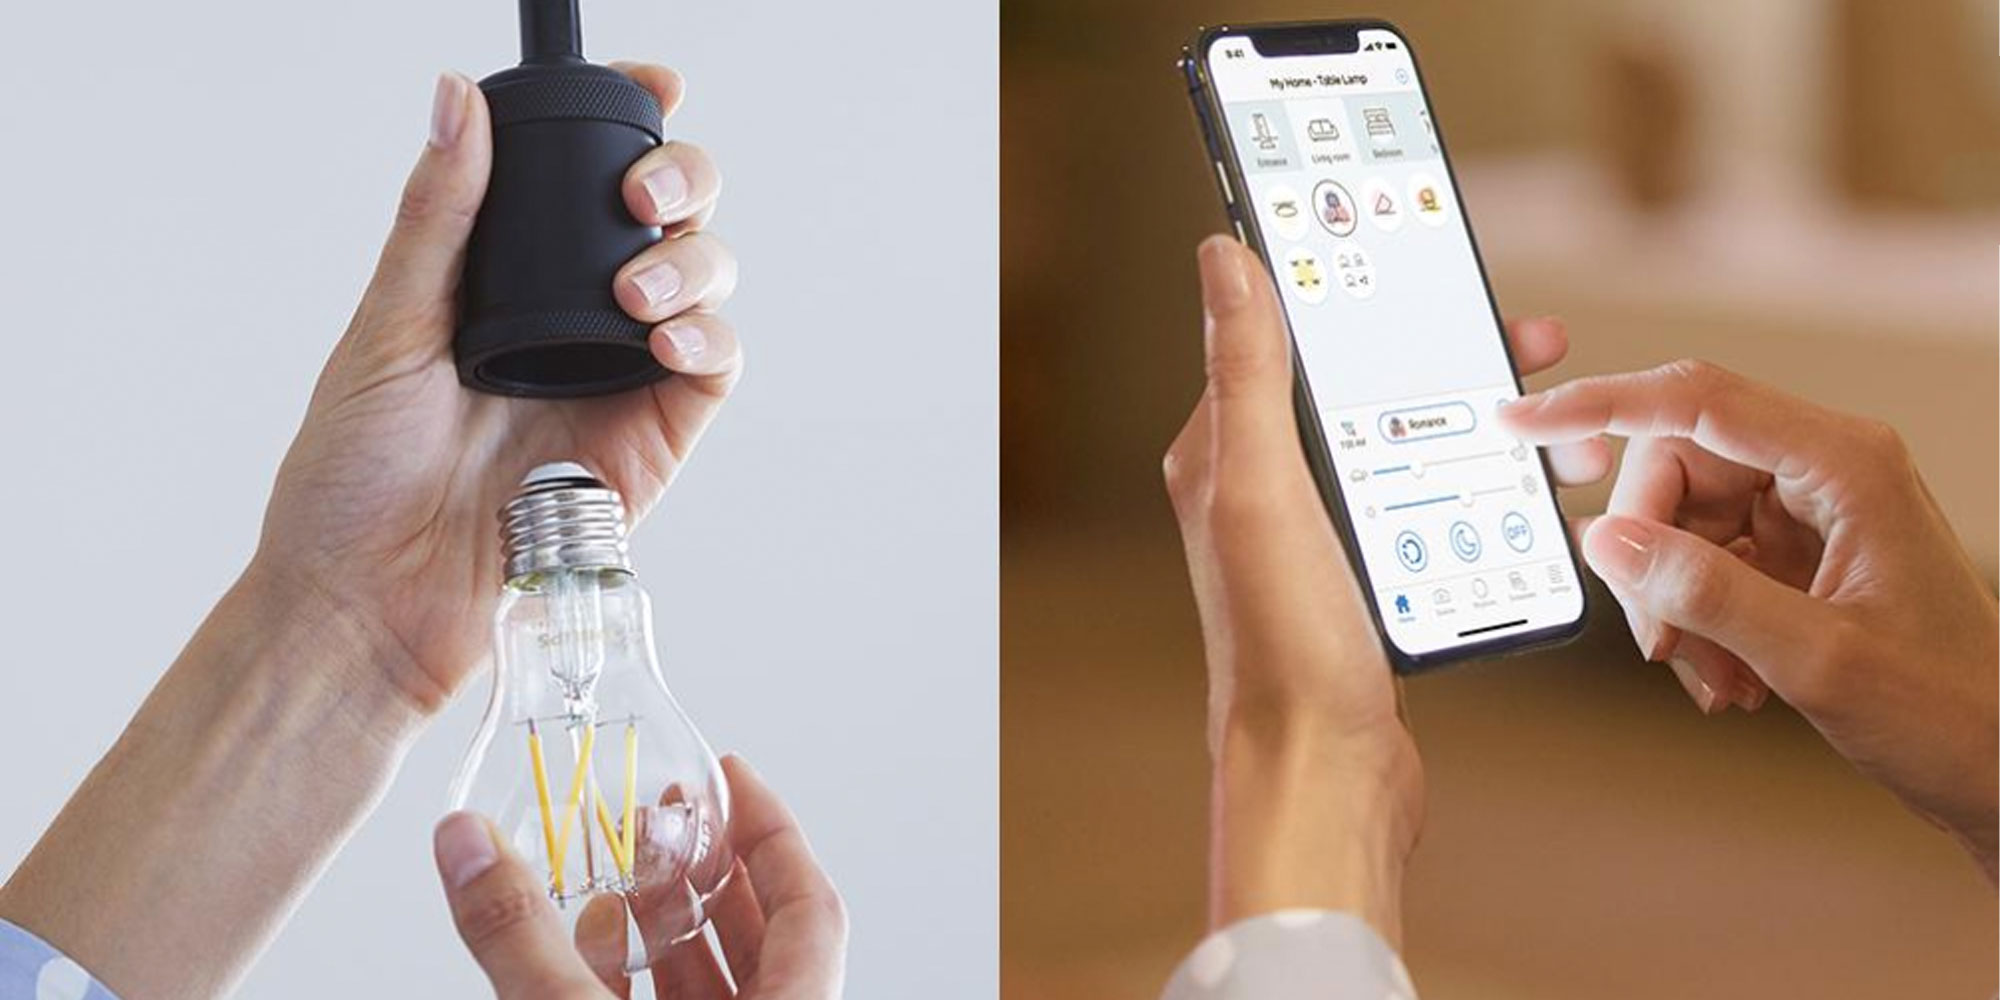 Philips WiZ Wi-Fi Smart Bulb Platform